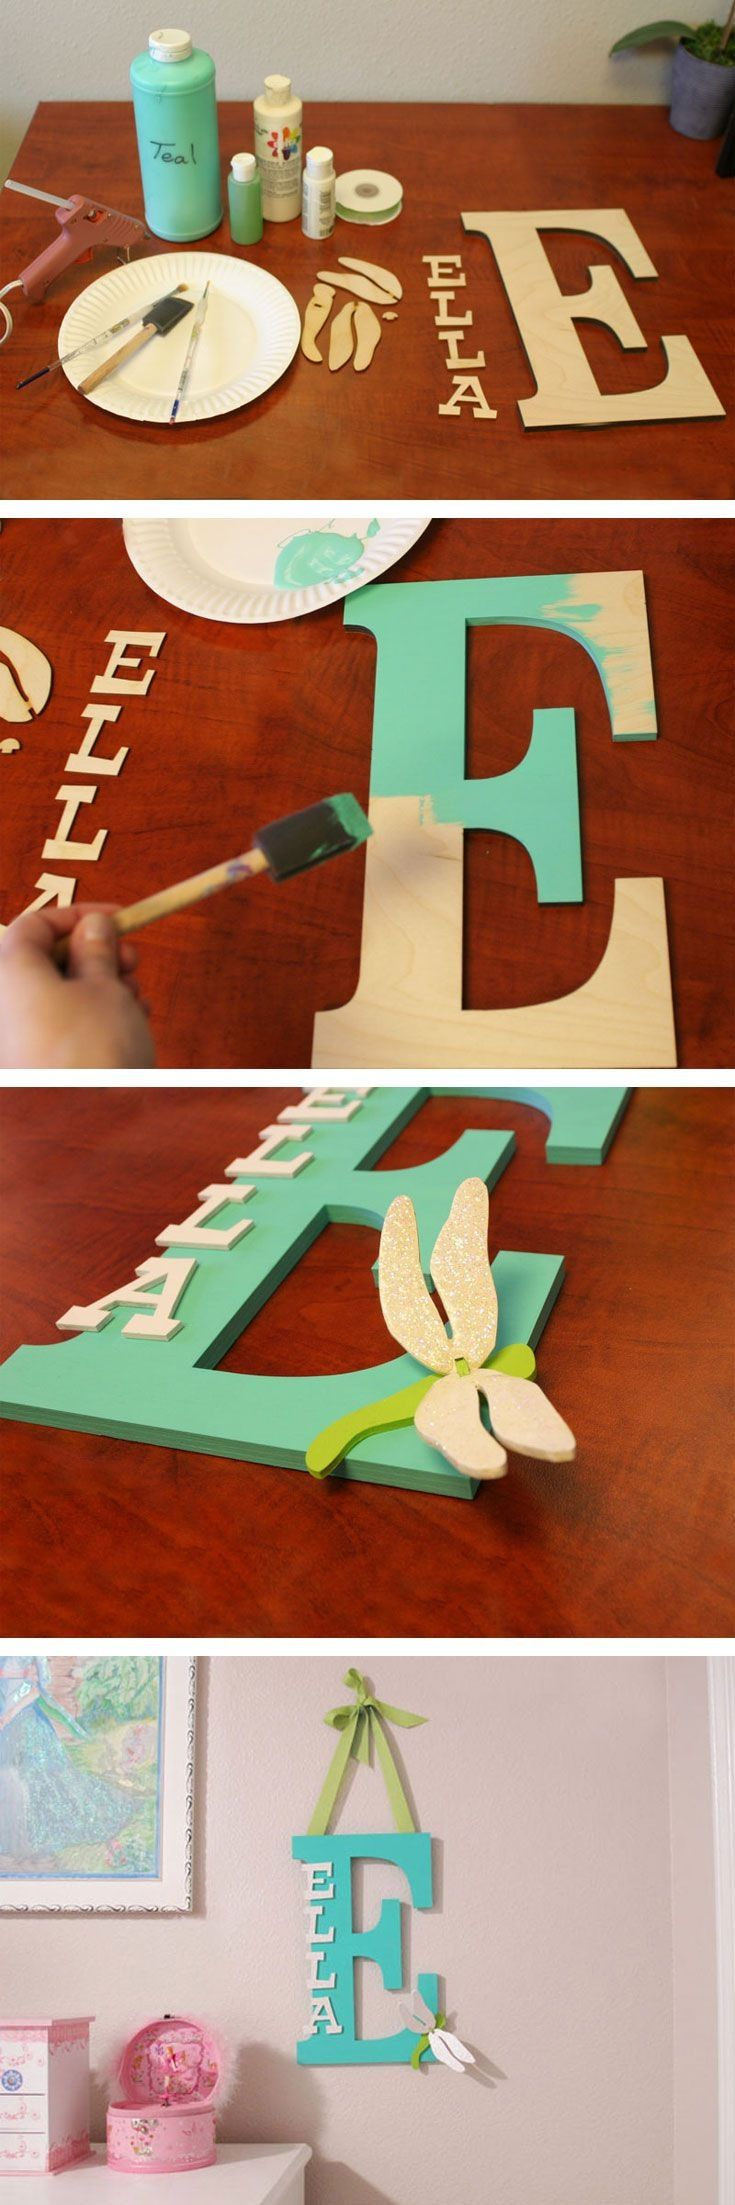 DIY Letter Ideas & Tutorials